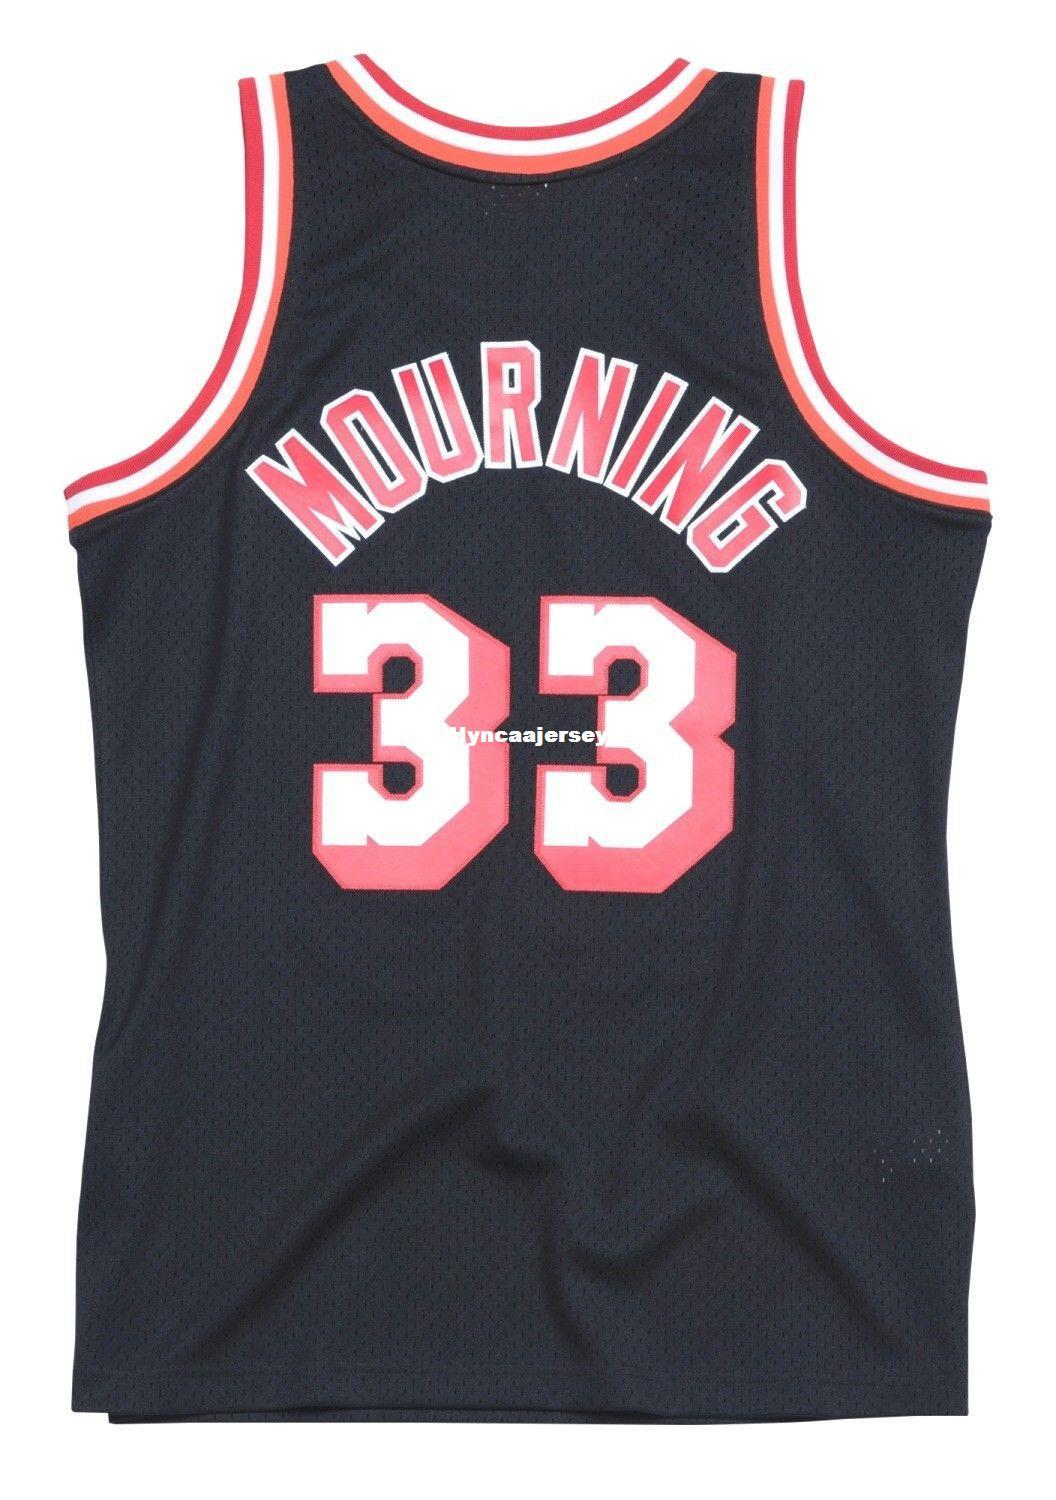 innovative design 11ceb 85401 Alonzo Mourning 33# Sewn Mitchell & Ness high quality Top HWC Jersey -  Black Mens Top Size XS-6XL Stitched basketball Jerseys Ncaa College